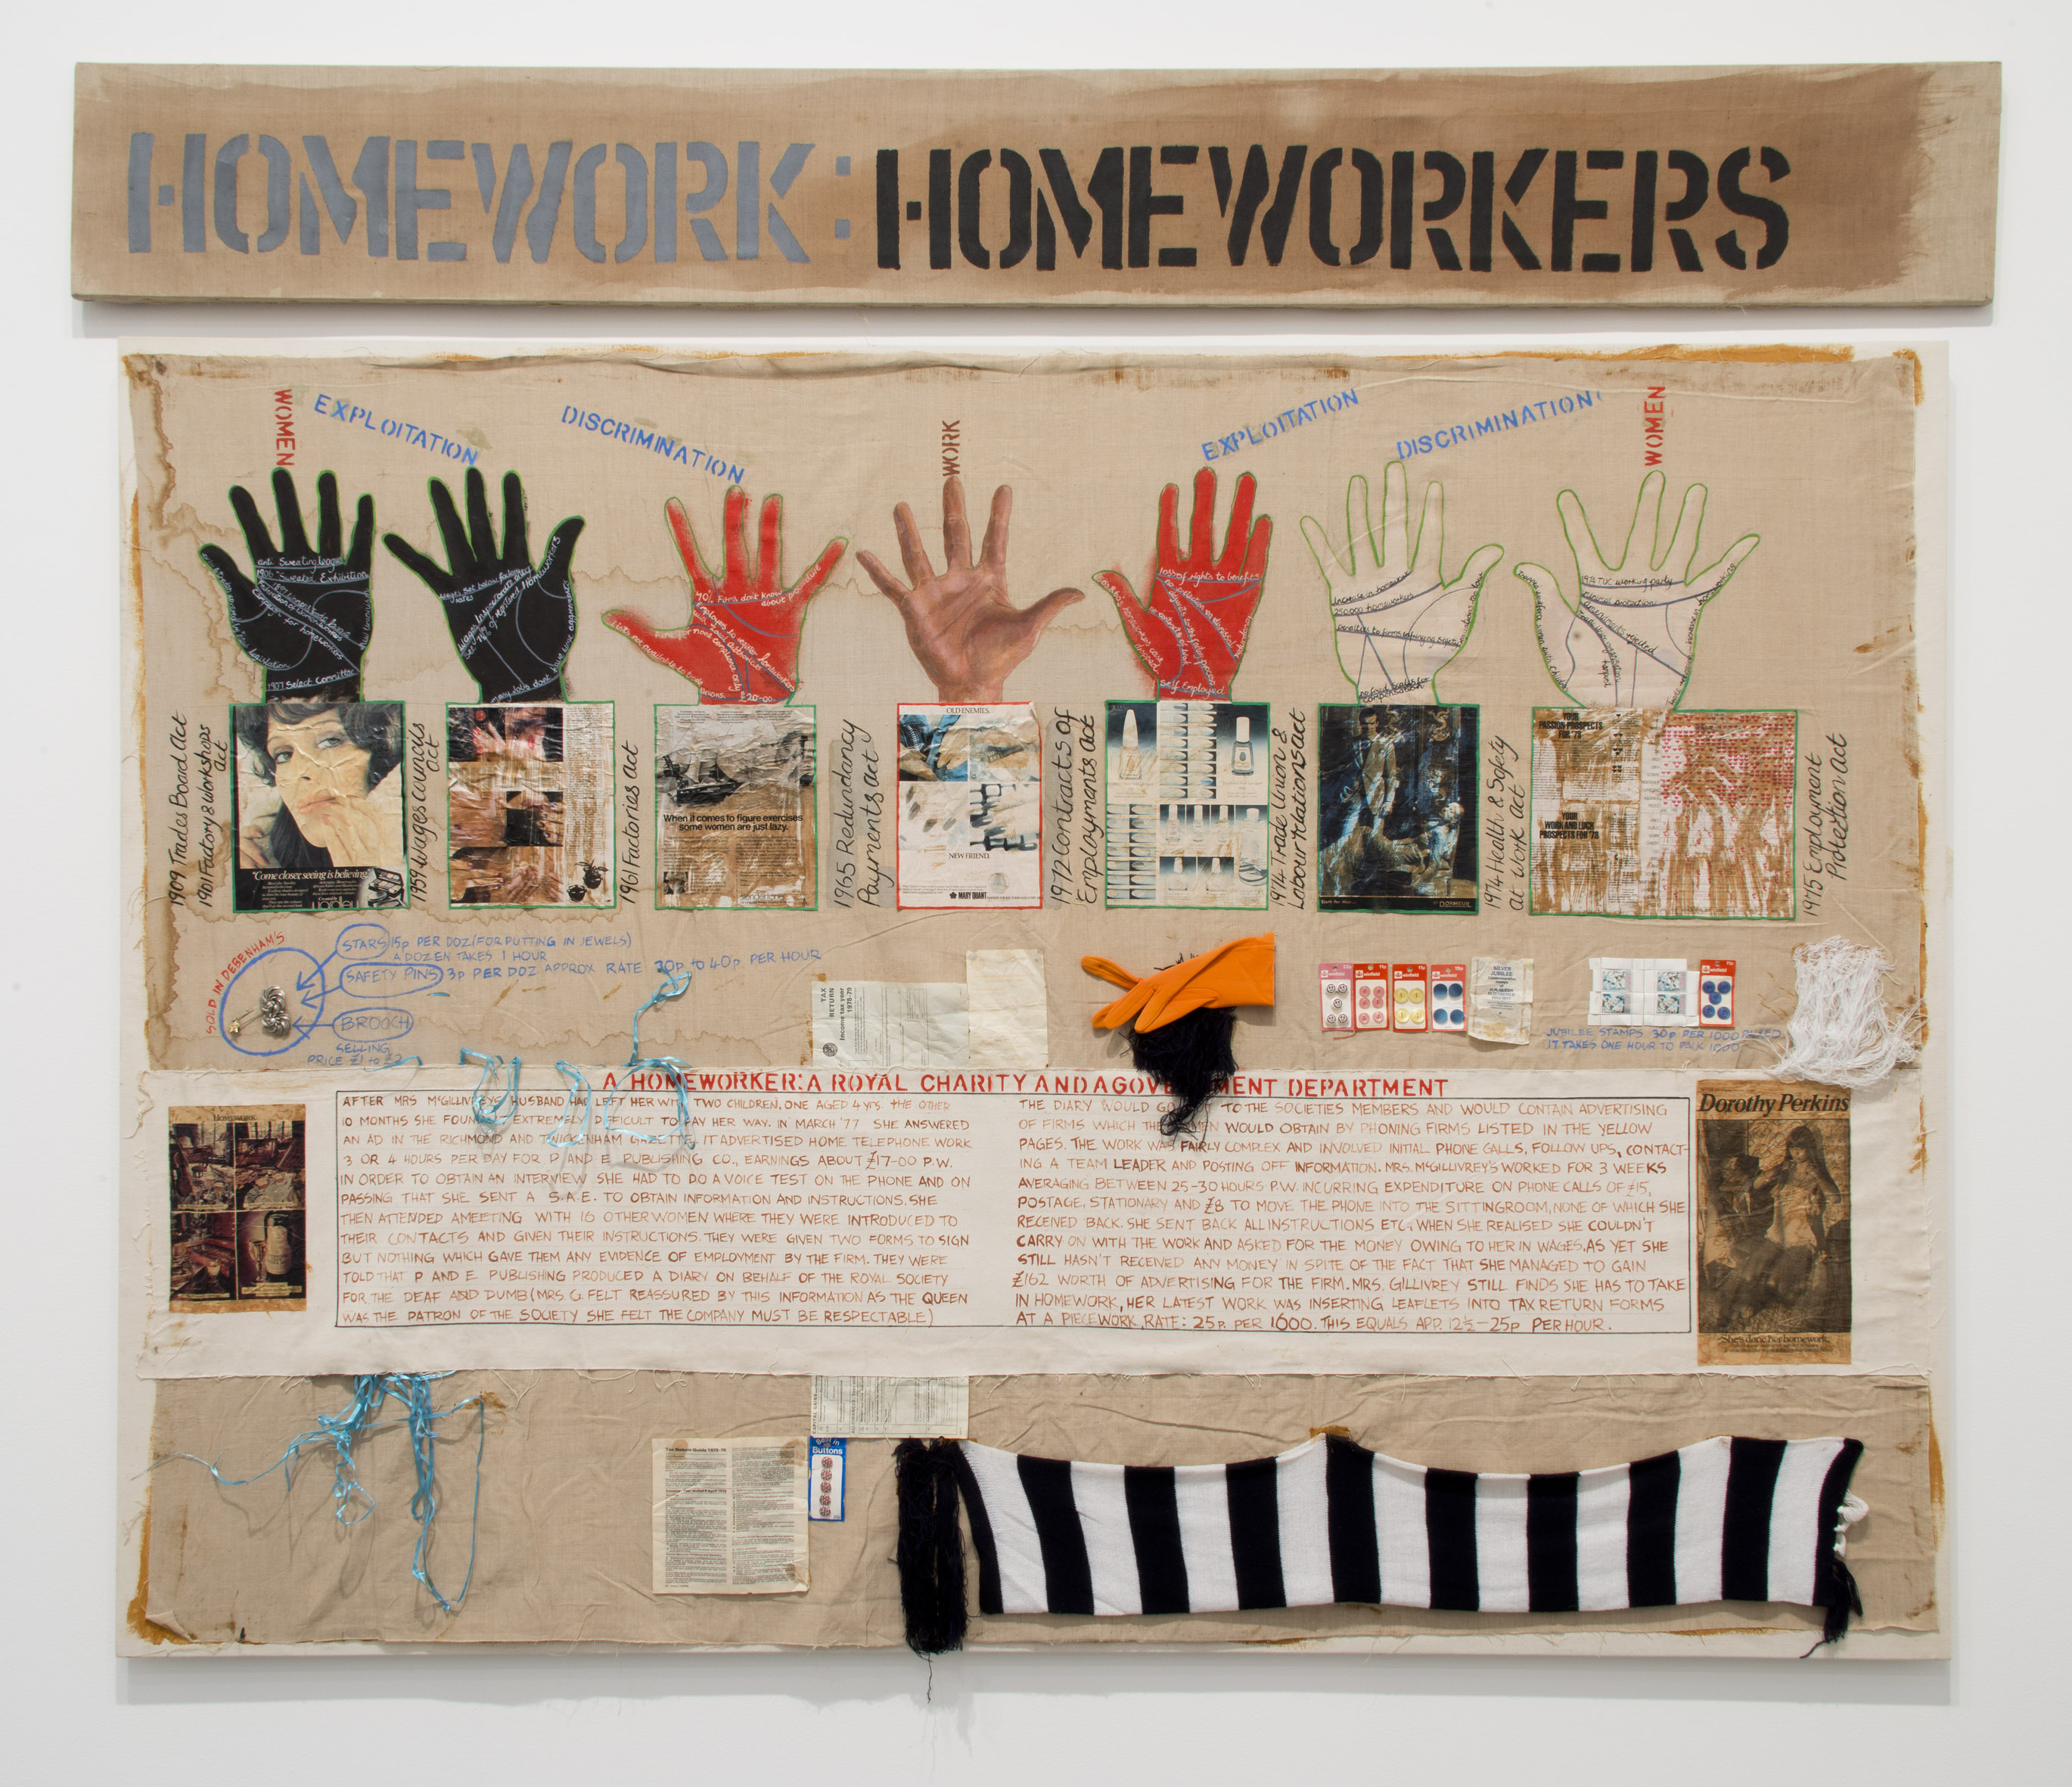 Margaret Harrison, Homeworkers, 1977. Collection of Tate. Purchased 2011.  © Margaret F. Harrison. Courtesy of Tate Britain.